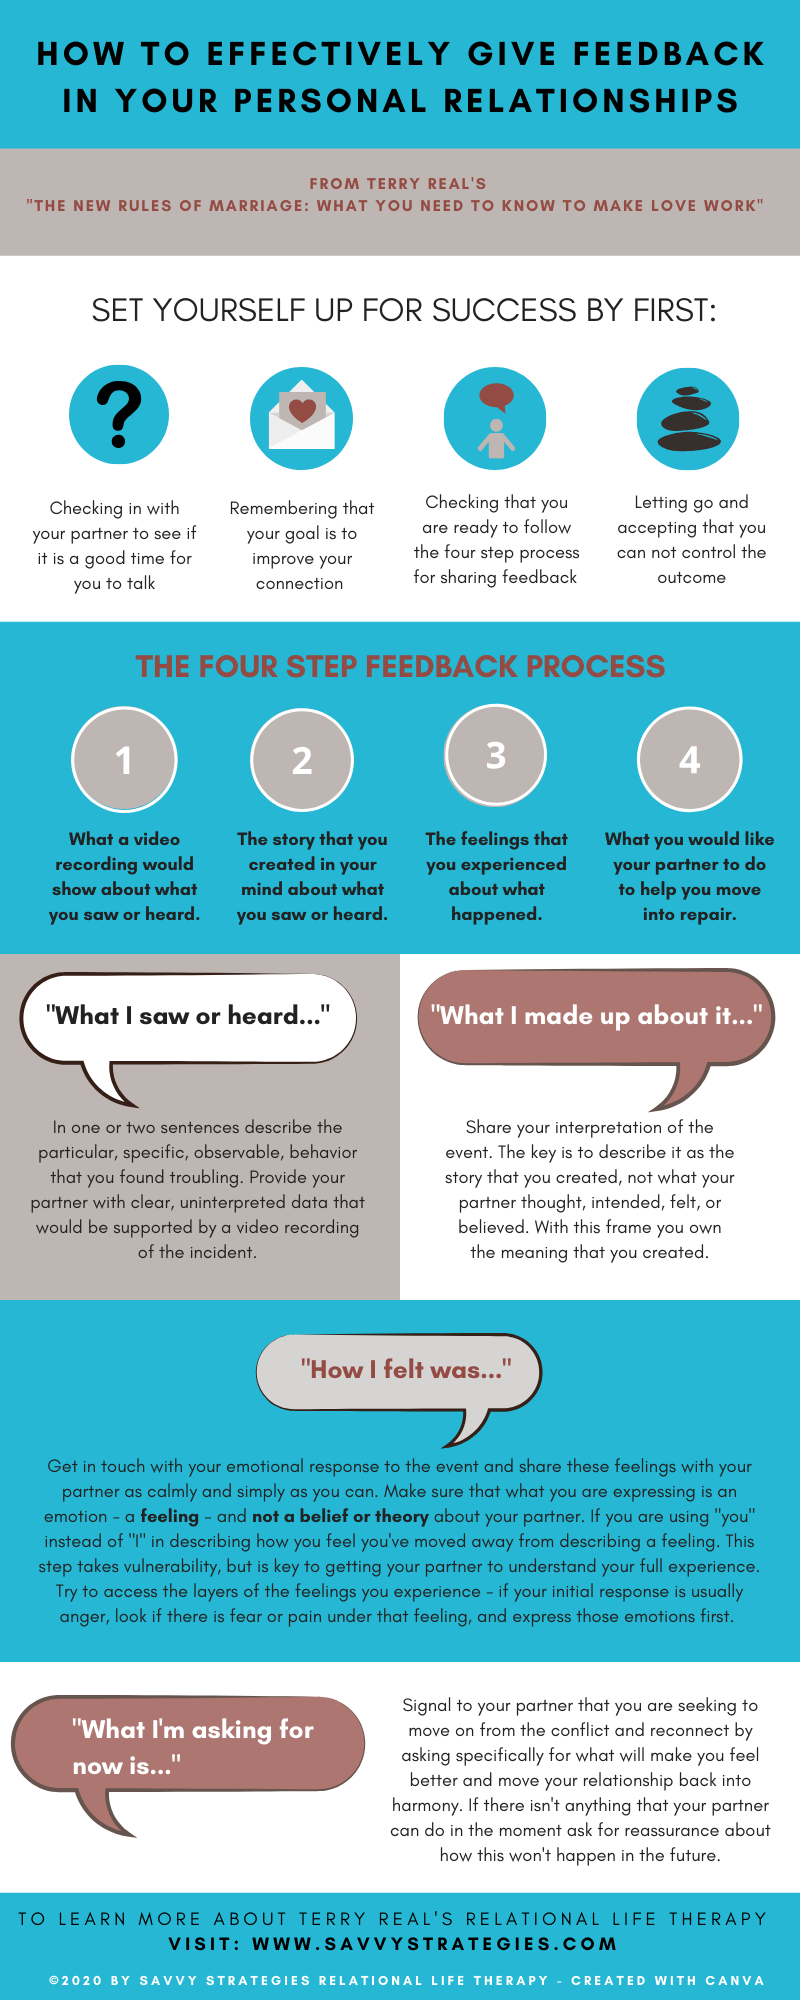 The Feedback Process